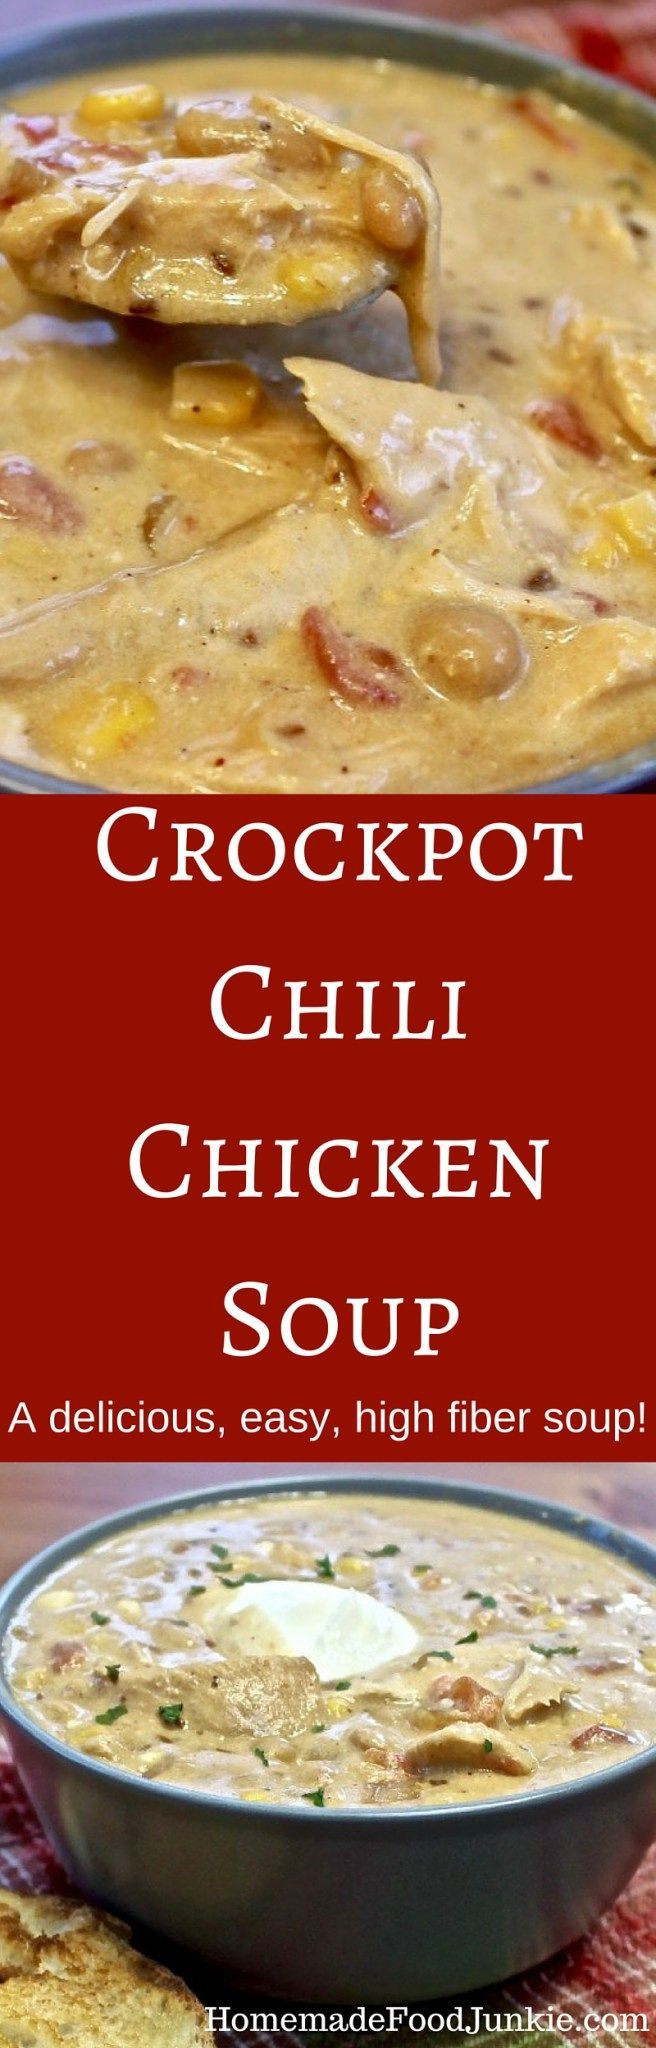 High Fiber Soup Recipes  Crockpot Chili Chicken Soup A delicious easy high fiber